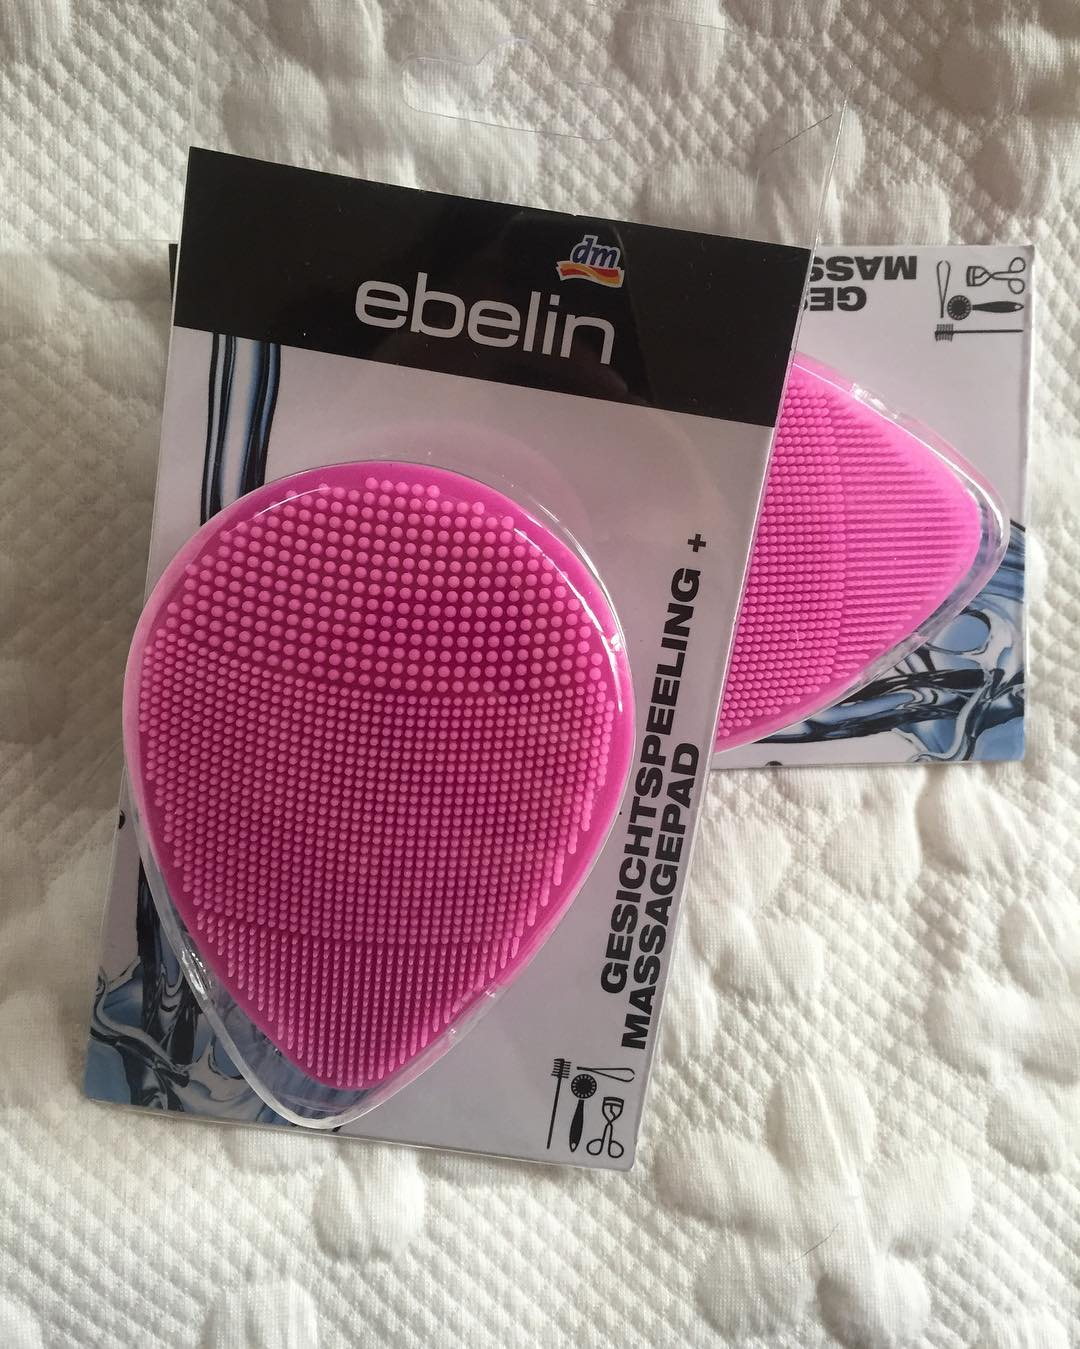 ebelin Professional facial + massage pad